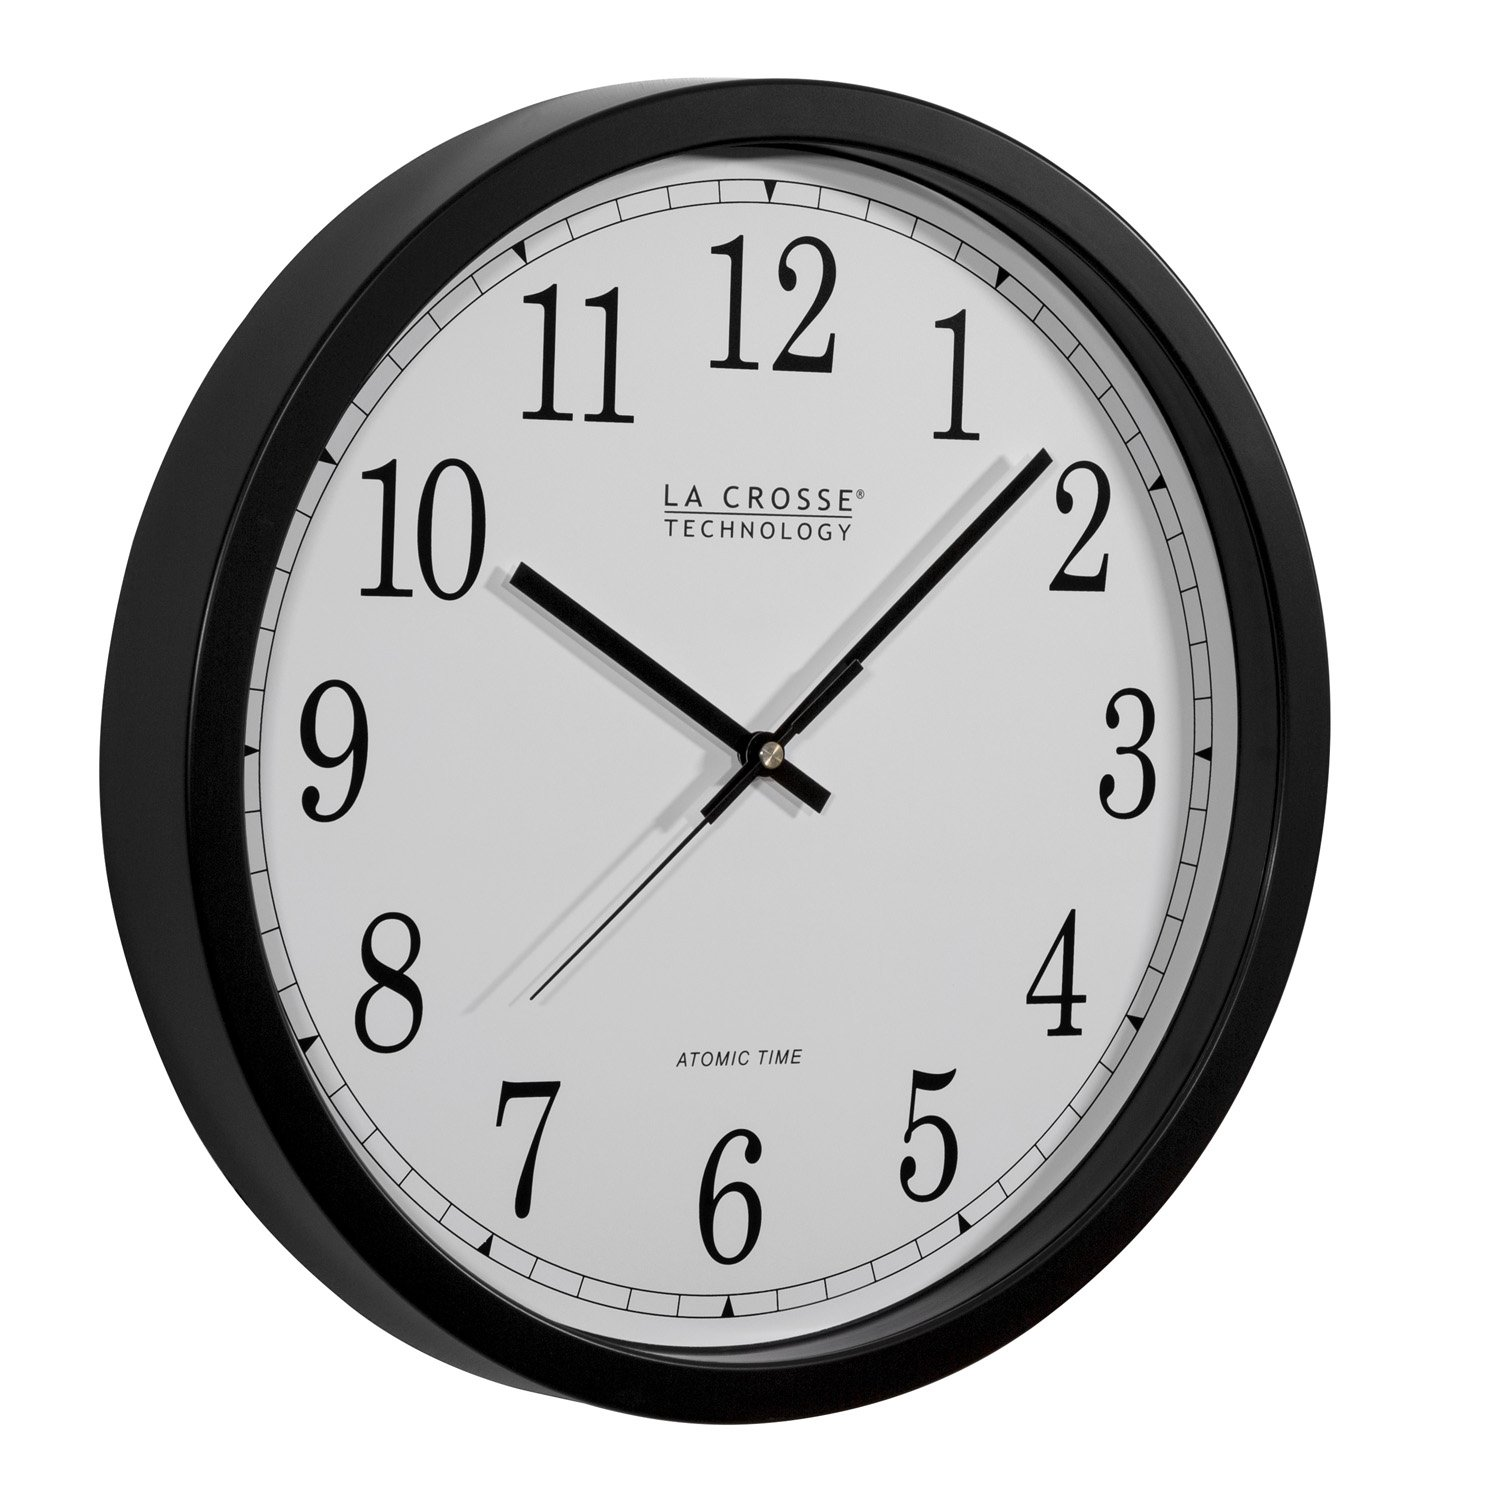 Amazon la crosse technology wt 3143a int 14 inch atomic wall amazon la crosse technology wt 3143a int 14 inch atomic wall clock black home kitchen amipublicfo Choice Image